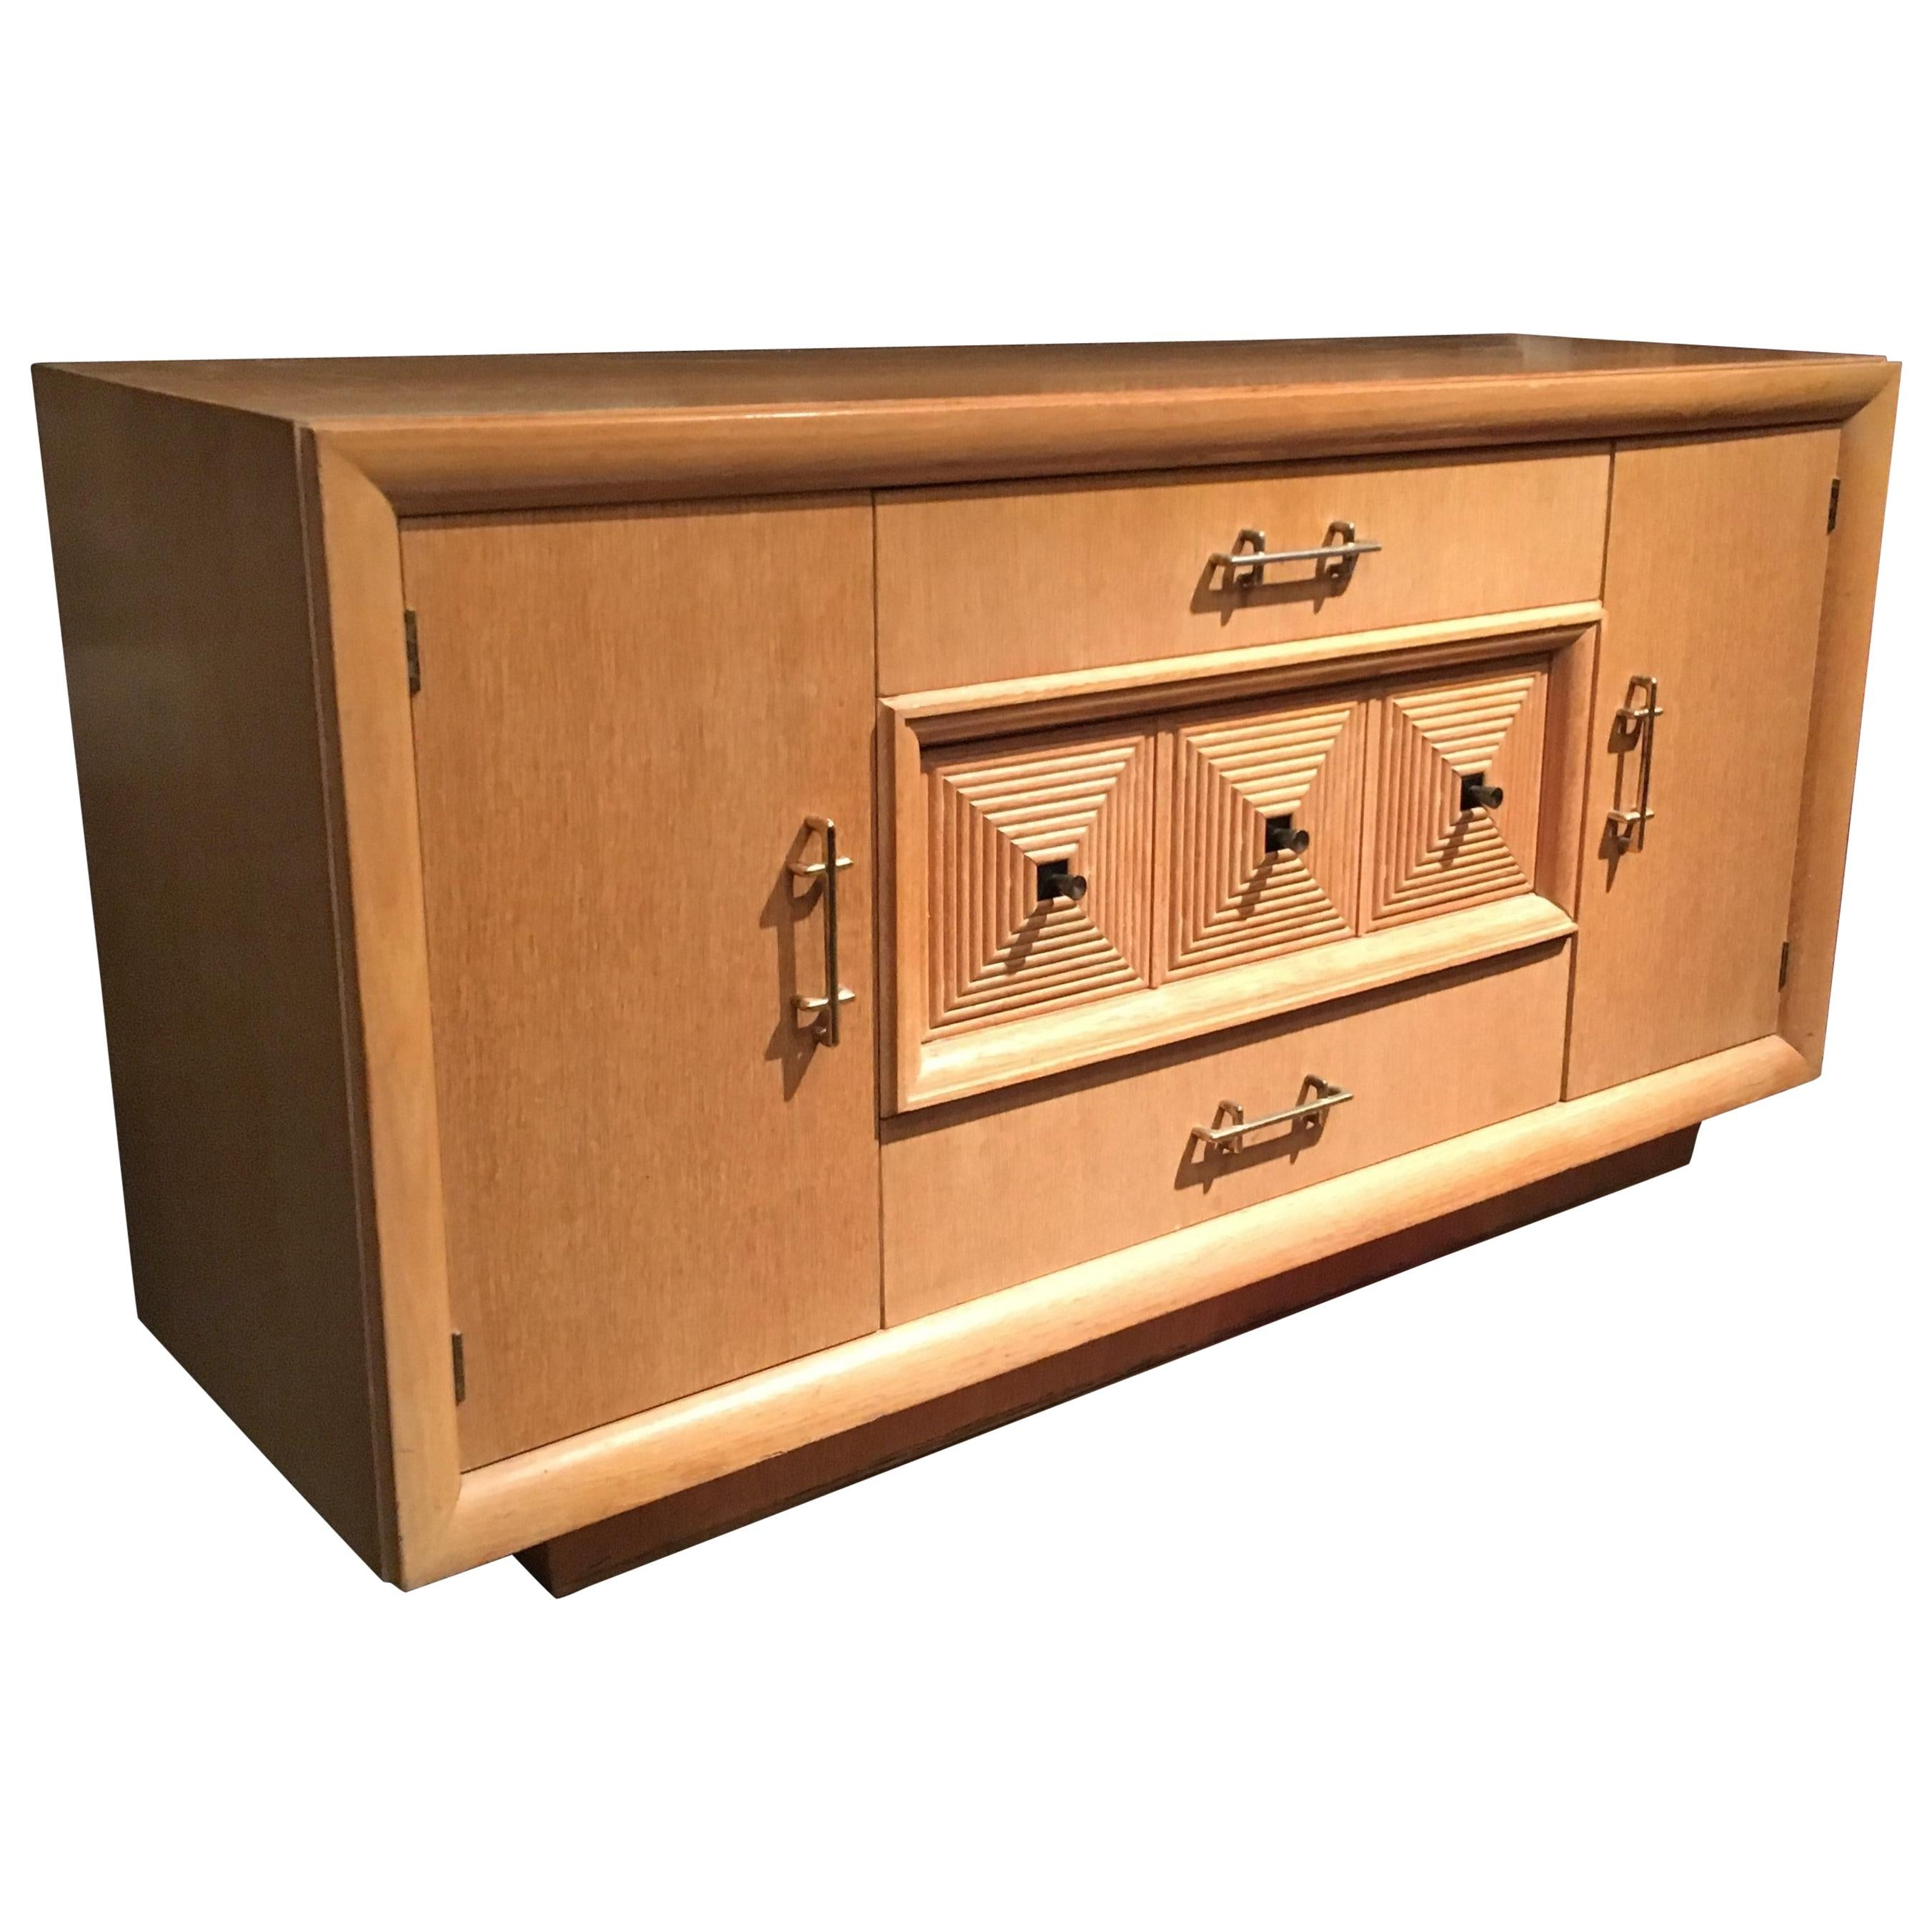 French Art Deco Credenza or Sideboard Attributed to Maxime Old